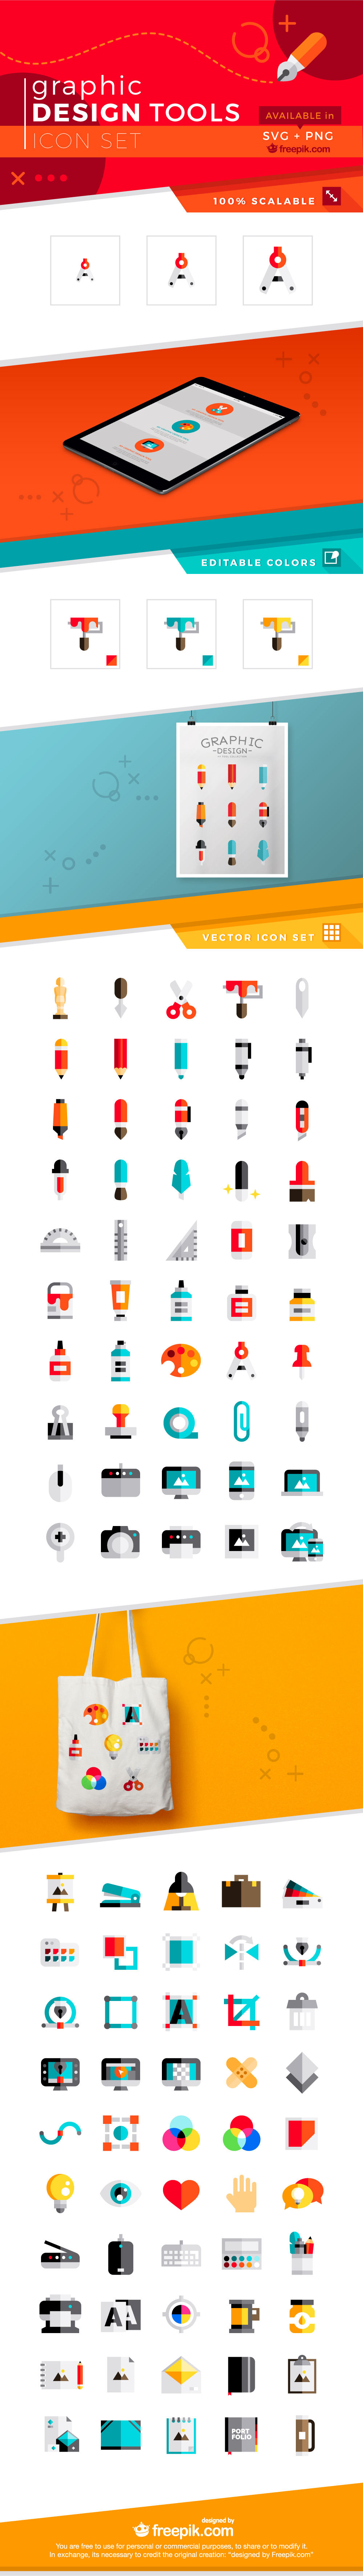 Free 100 Graphic Design Tools Icons